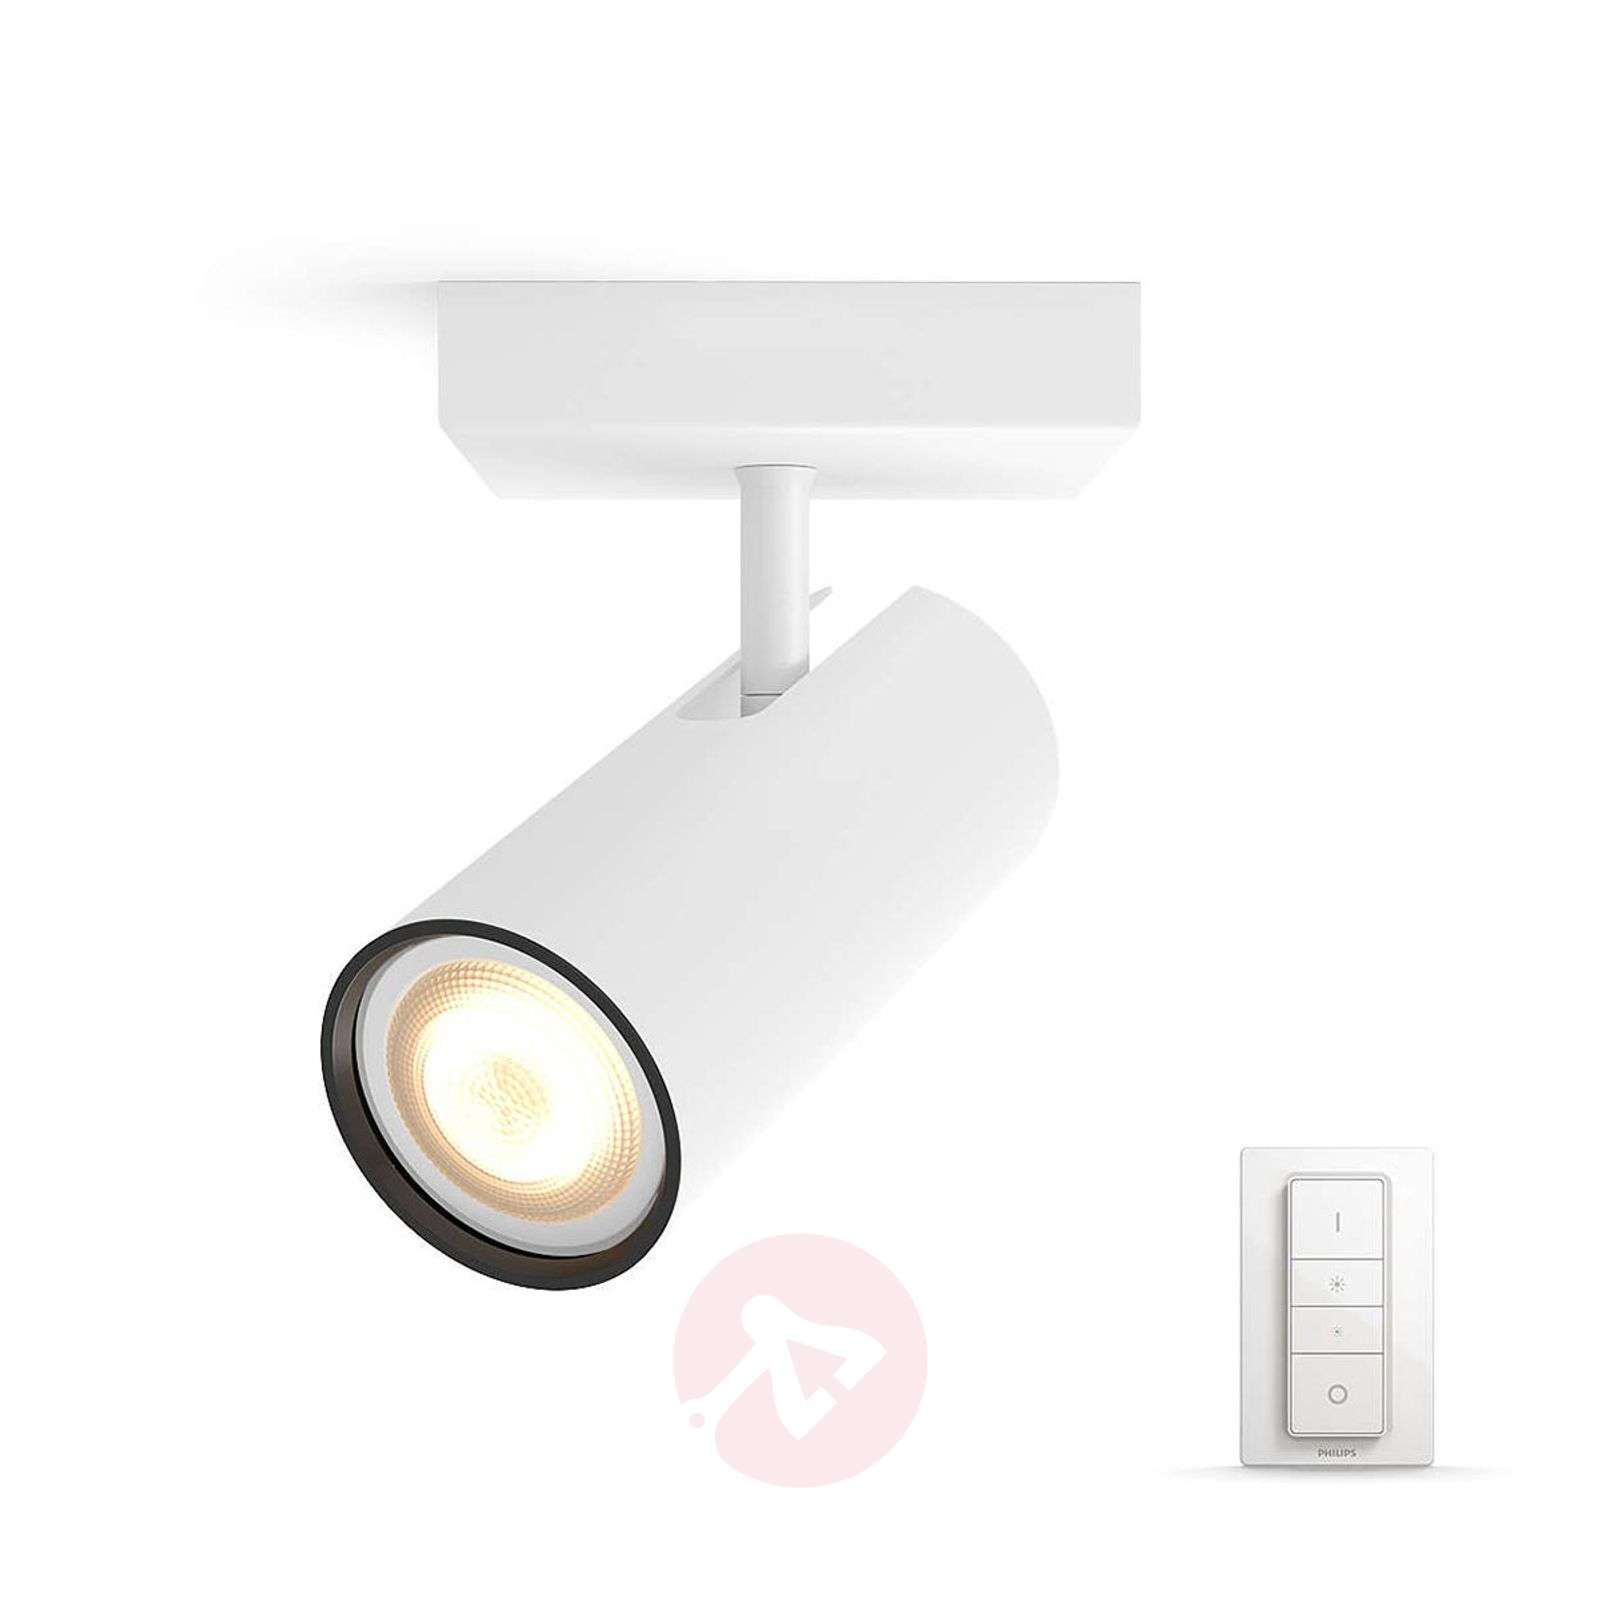 Philips Hue Led Spotlight Buratto Dimmer Switch 7532040 01